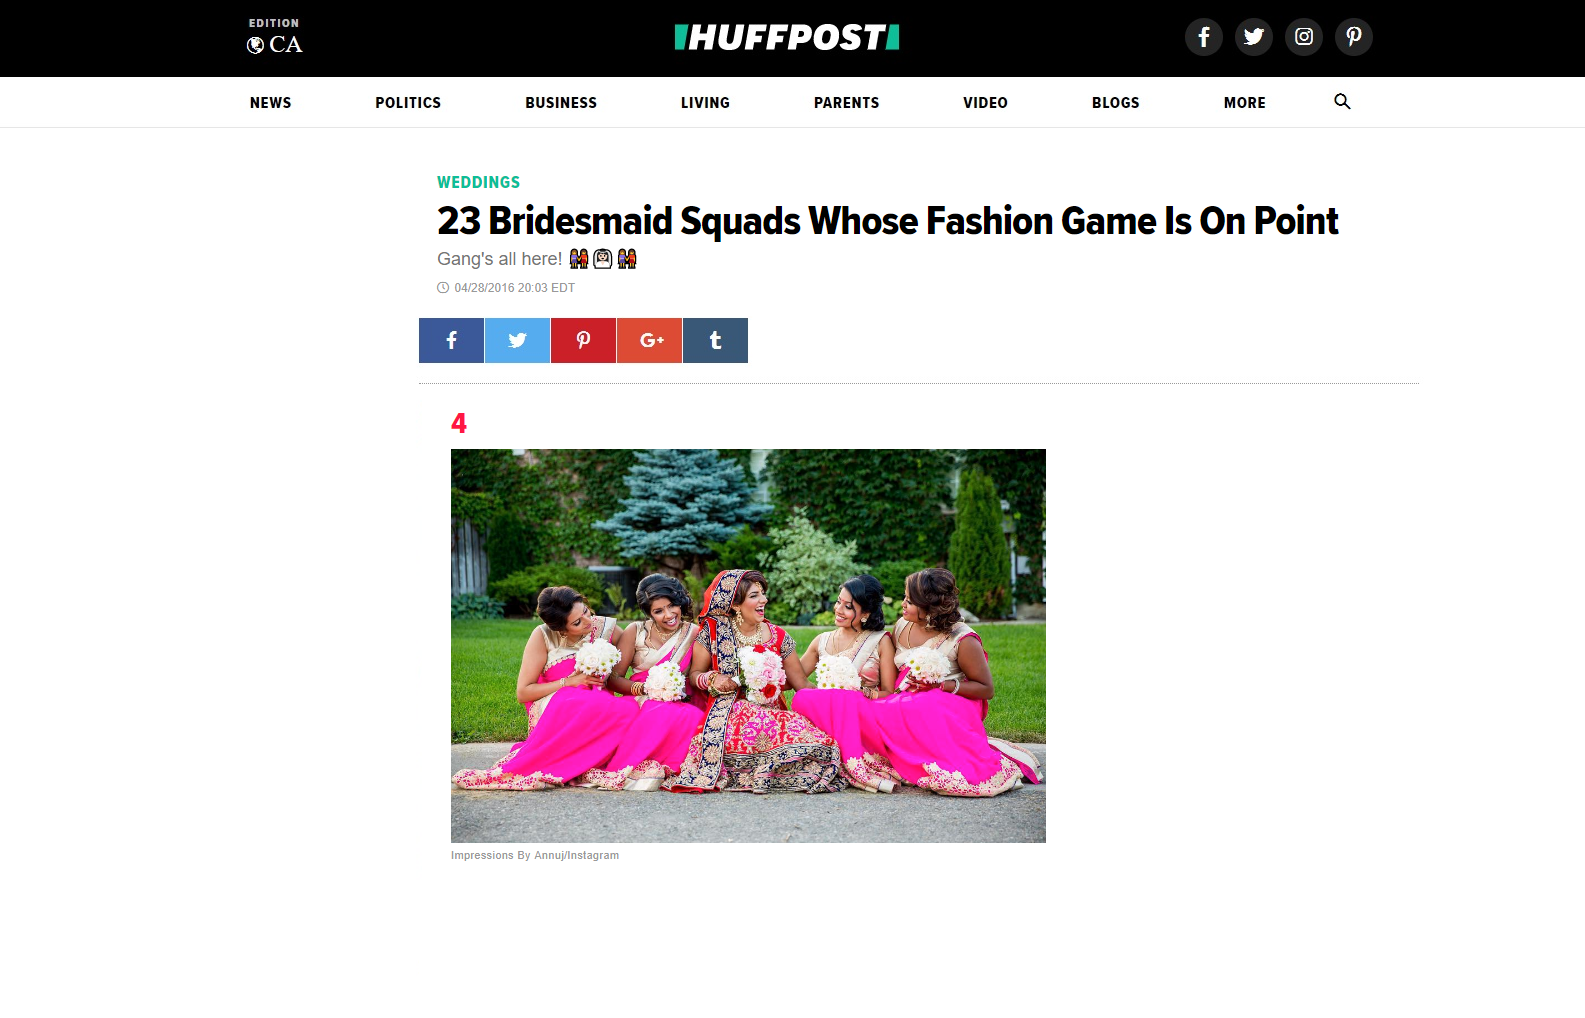 HuffPost Weddings Feature - 23 Bridesmaid Squads Whose Fashion Game Is On Point